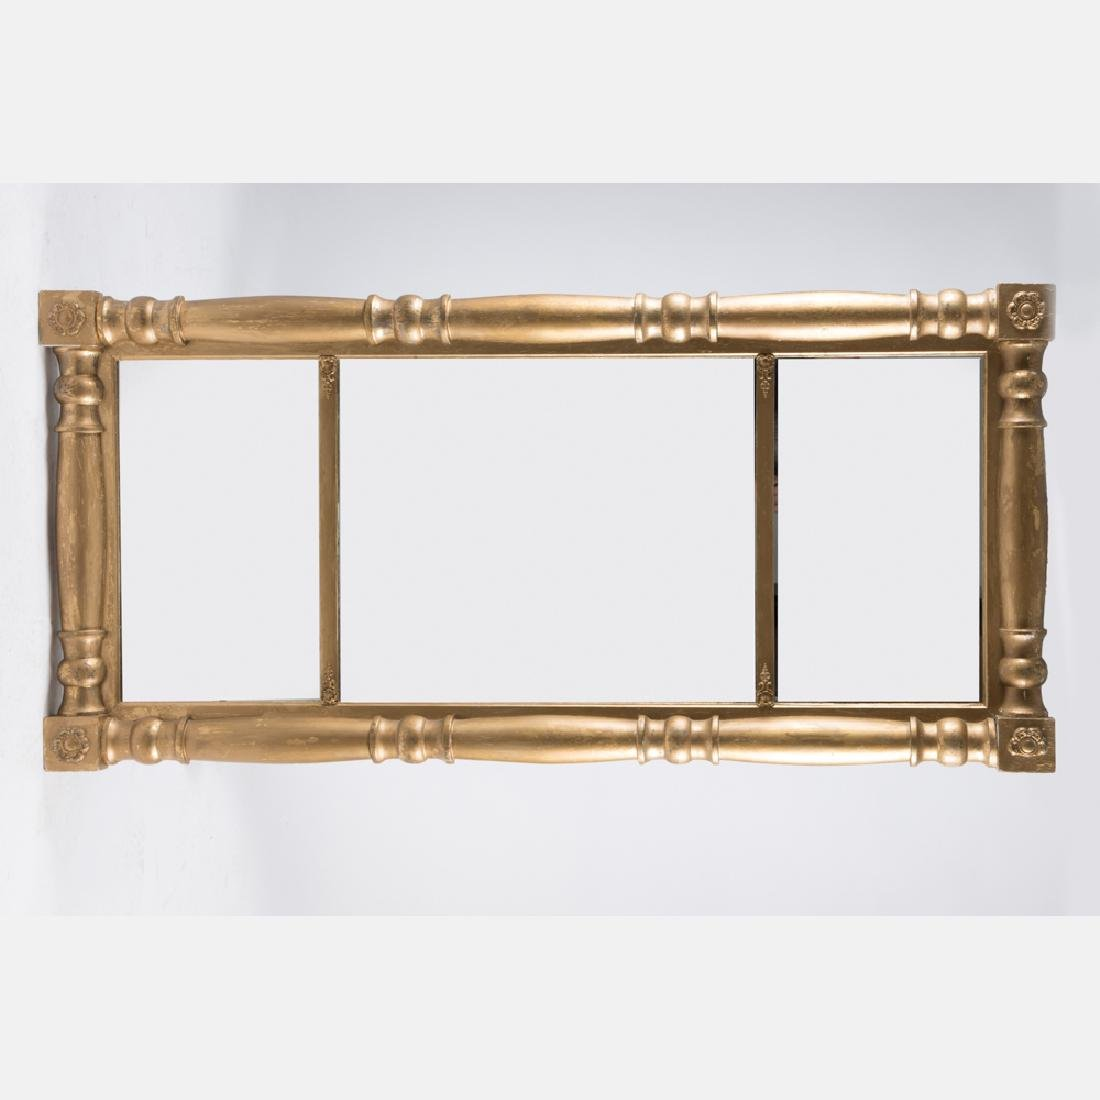 An American Federal Style Gilt Framed Mirror, 19th